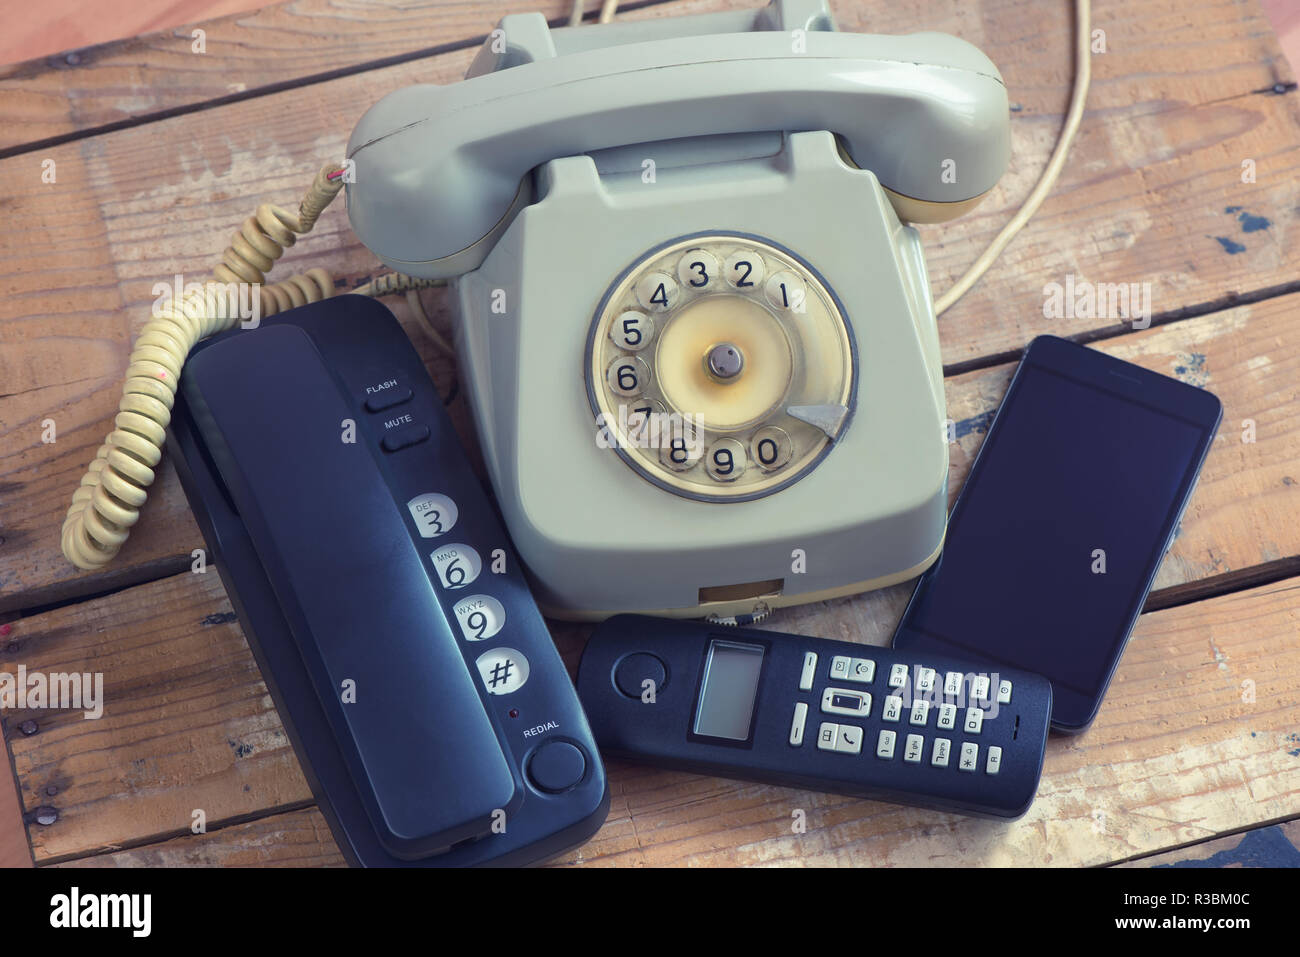 Different types of telephones landline phone, smartphone, phone with rotary on wooden board - Stock Image